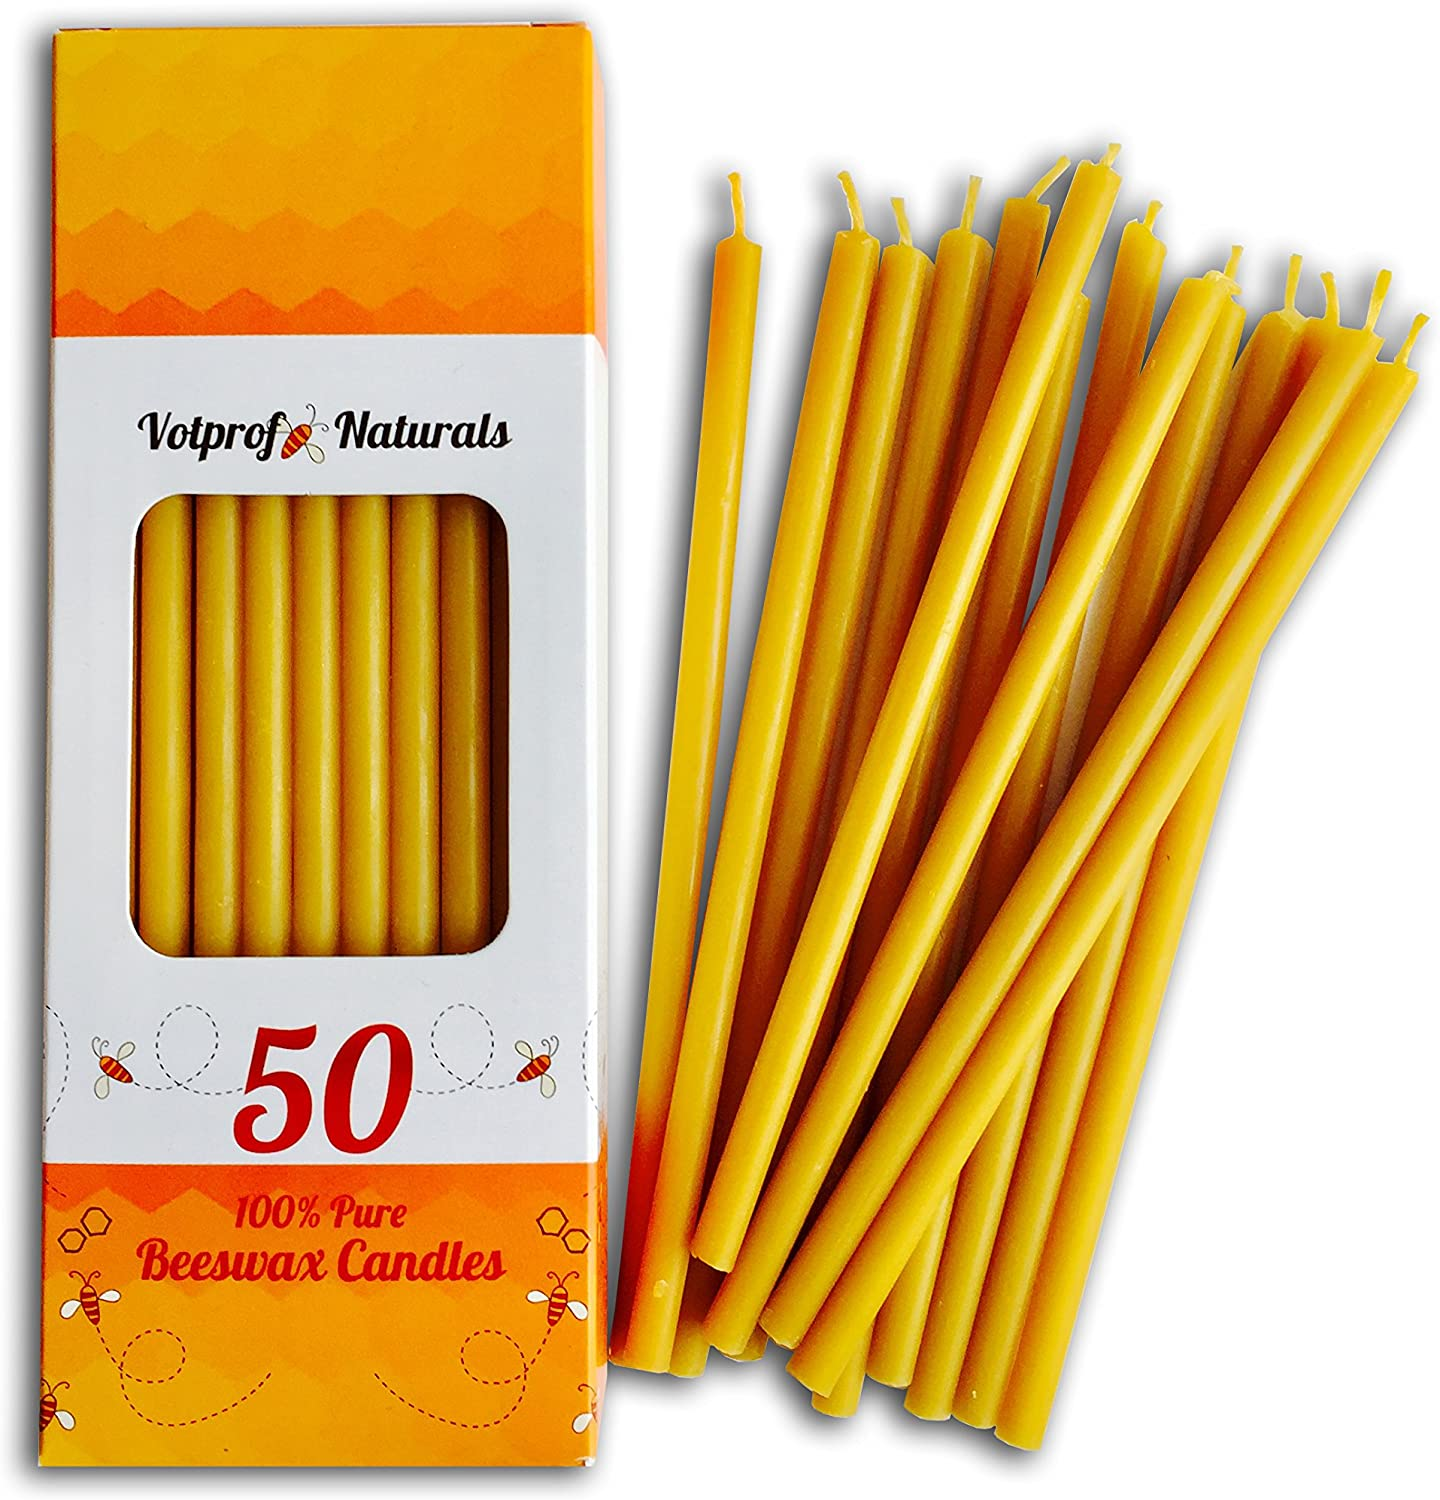 50 All Natural Décor 100% Pure Beeswax Taper Candles – Tall (6 in), Unscented, Dripless, Smokeless, Slow Burning, Non Toxic, Honey Scent - for Home, Dinner, Cake, Prayer, Church, Hanukkah, Christmas